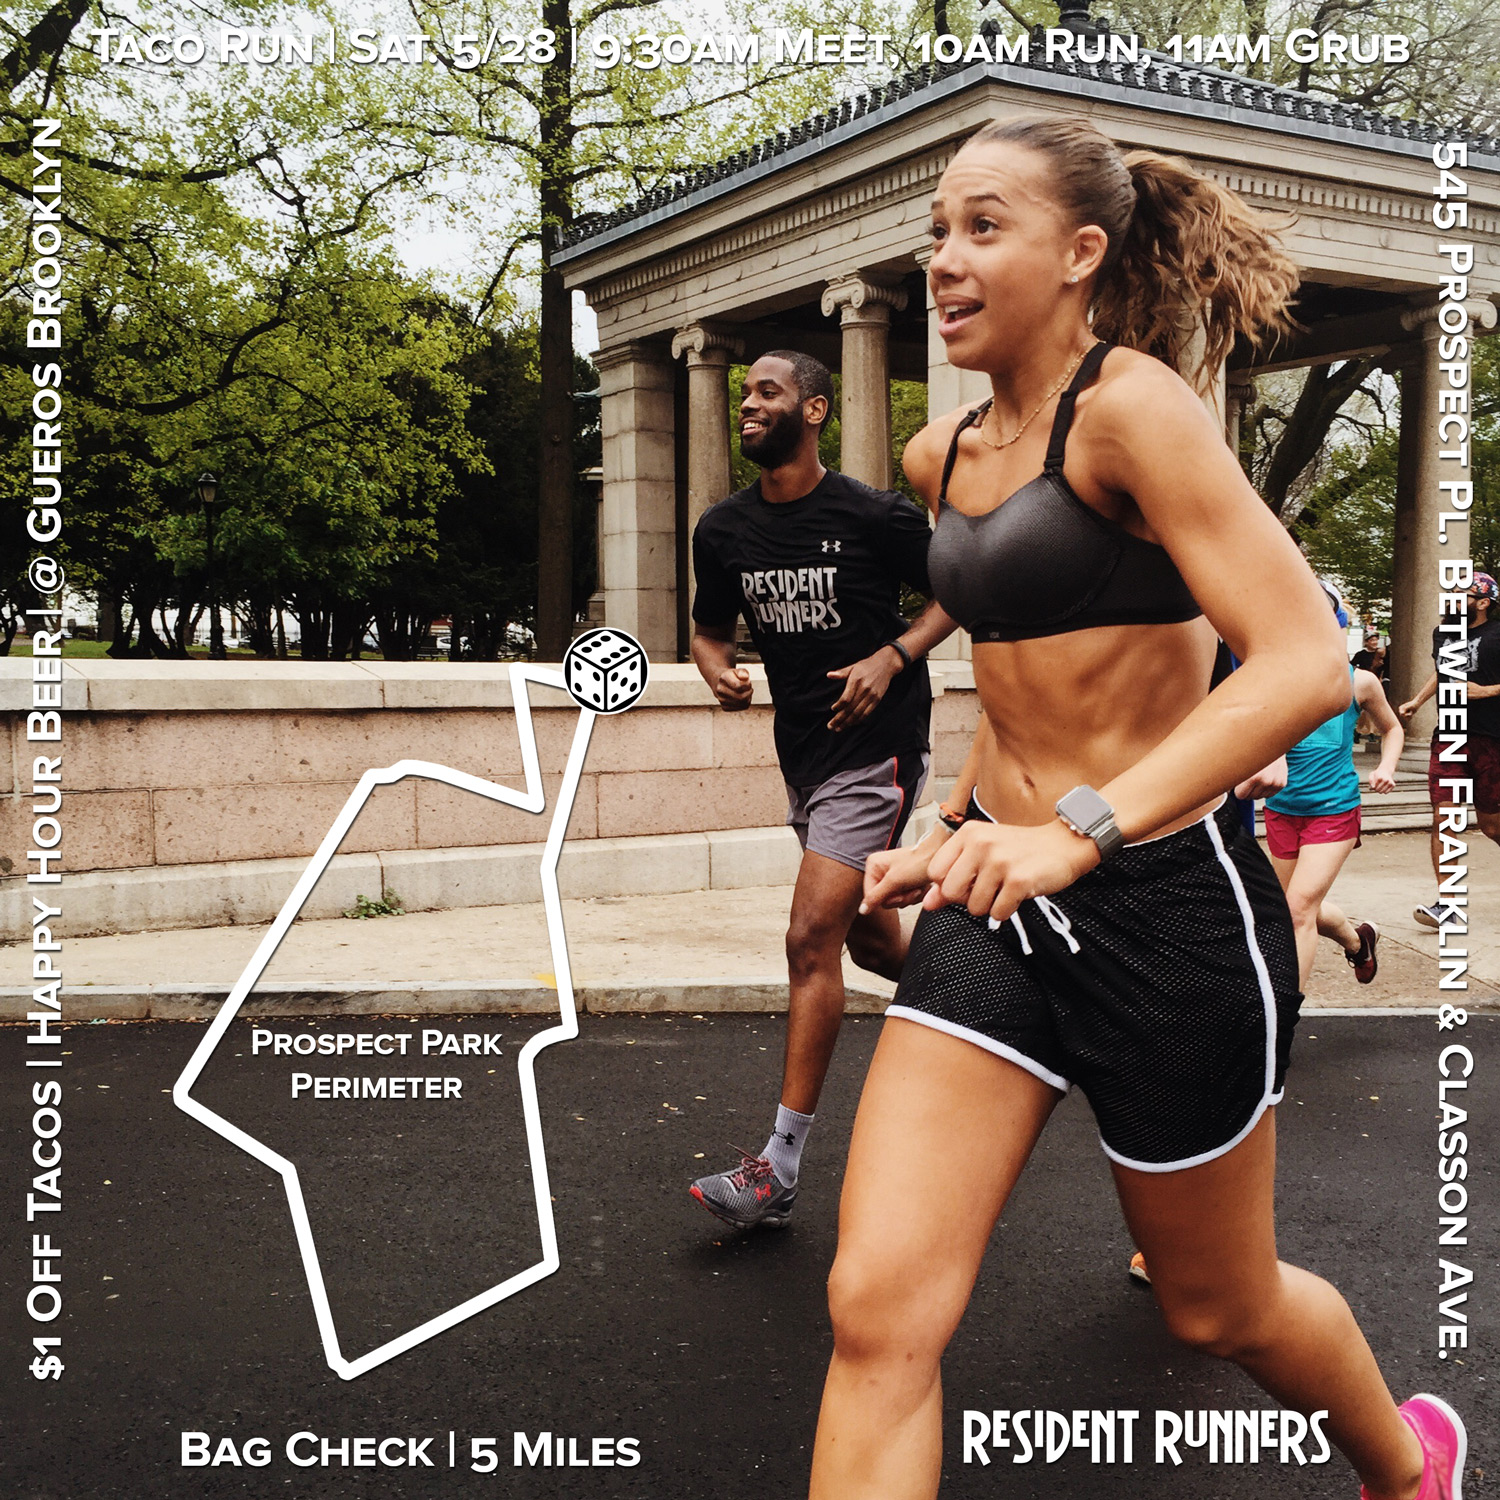 Click here to view the route on MapMyRun.